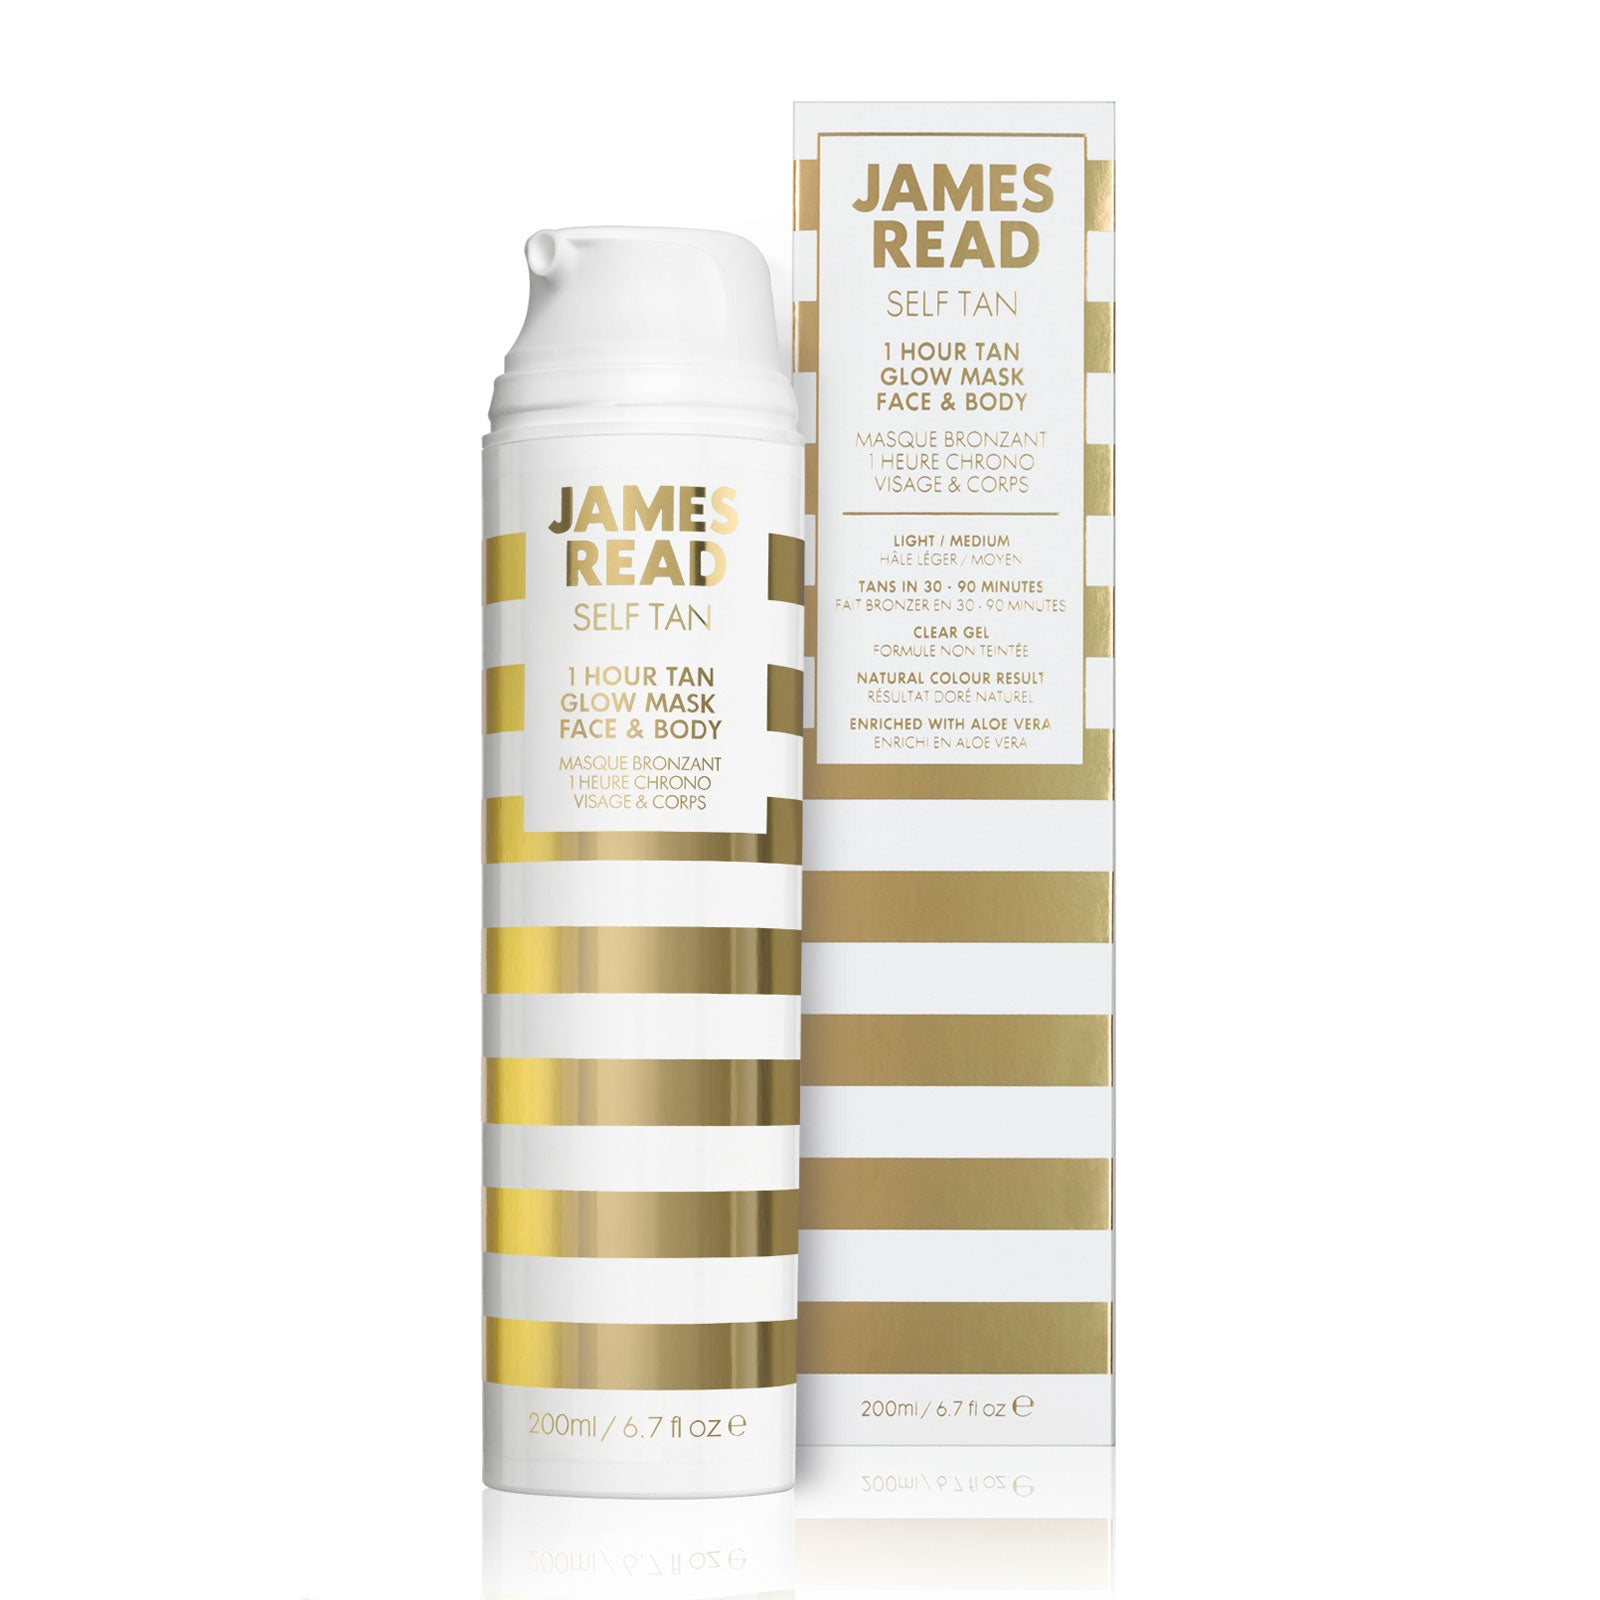 James Read 1 Hour Tan Glow Mask Face & Body 200ml